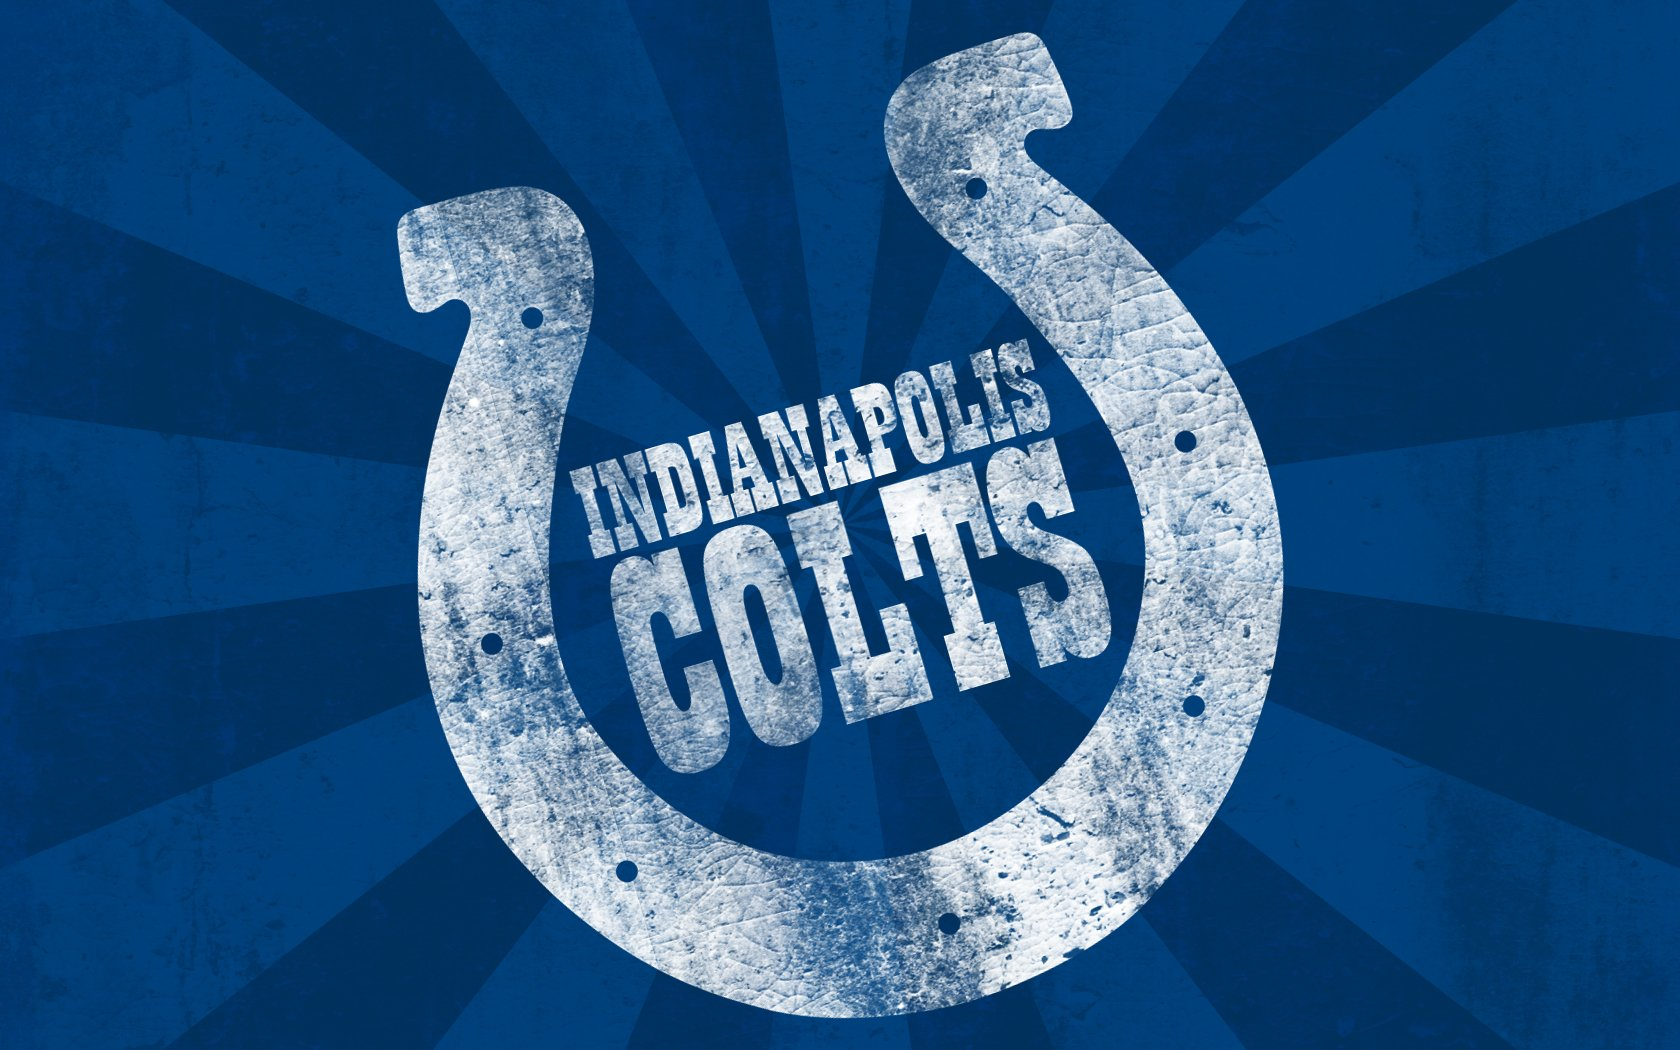 9 Indianapolis Colts HD Wallpapers | Backgrounds - Wallpaper Abyss